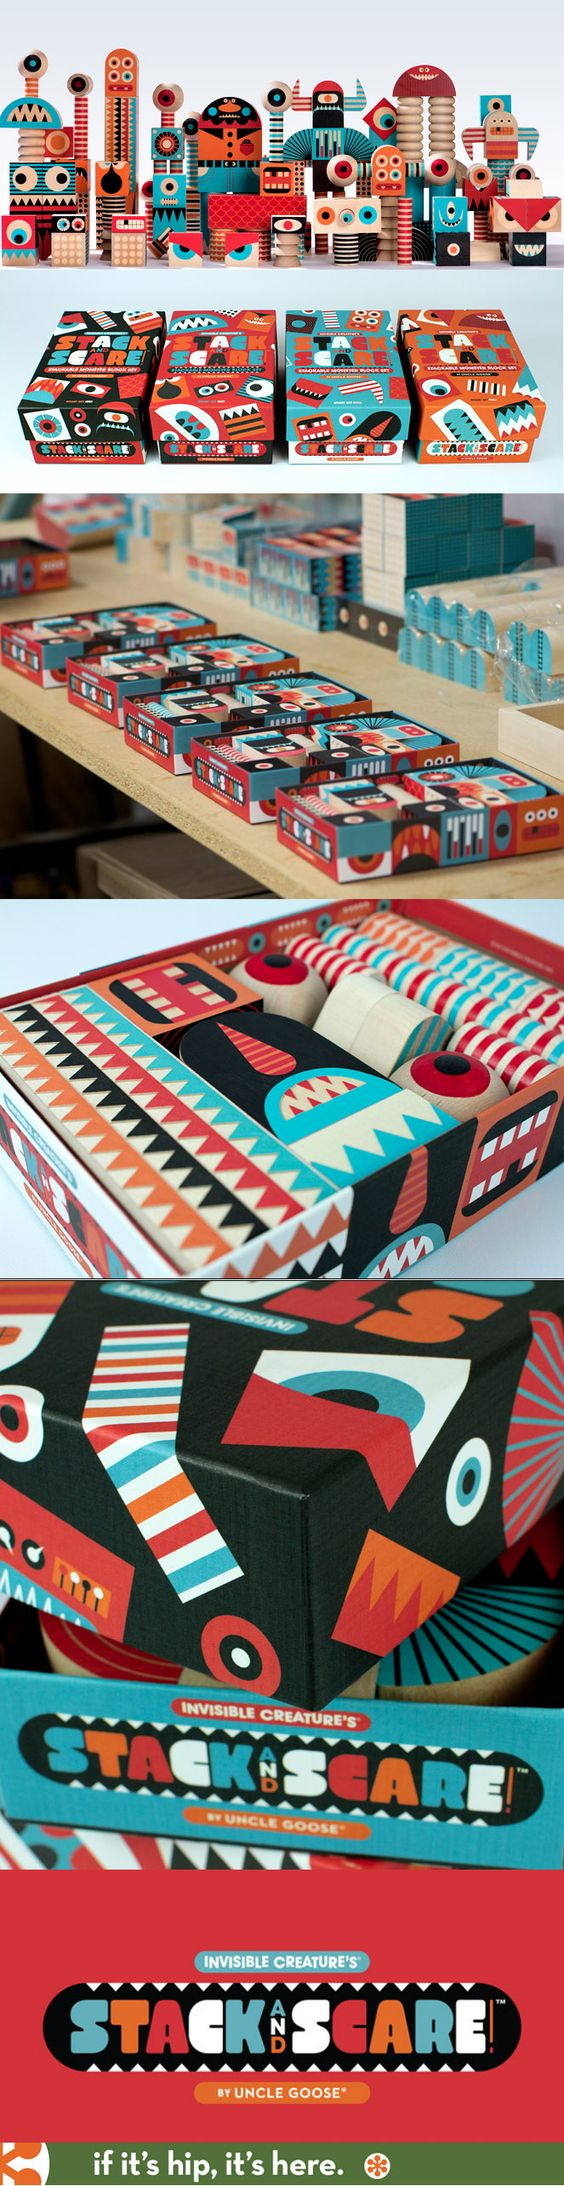 Stack and Scare by Invisible Creatures. Four sets of beautifully designed blocks, each in great package design.